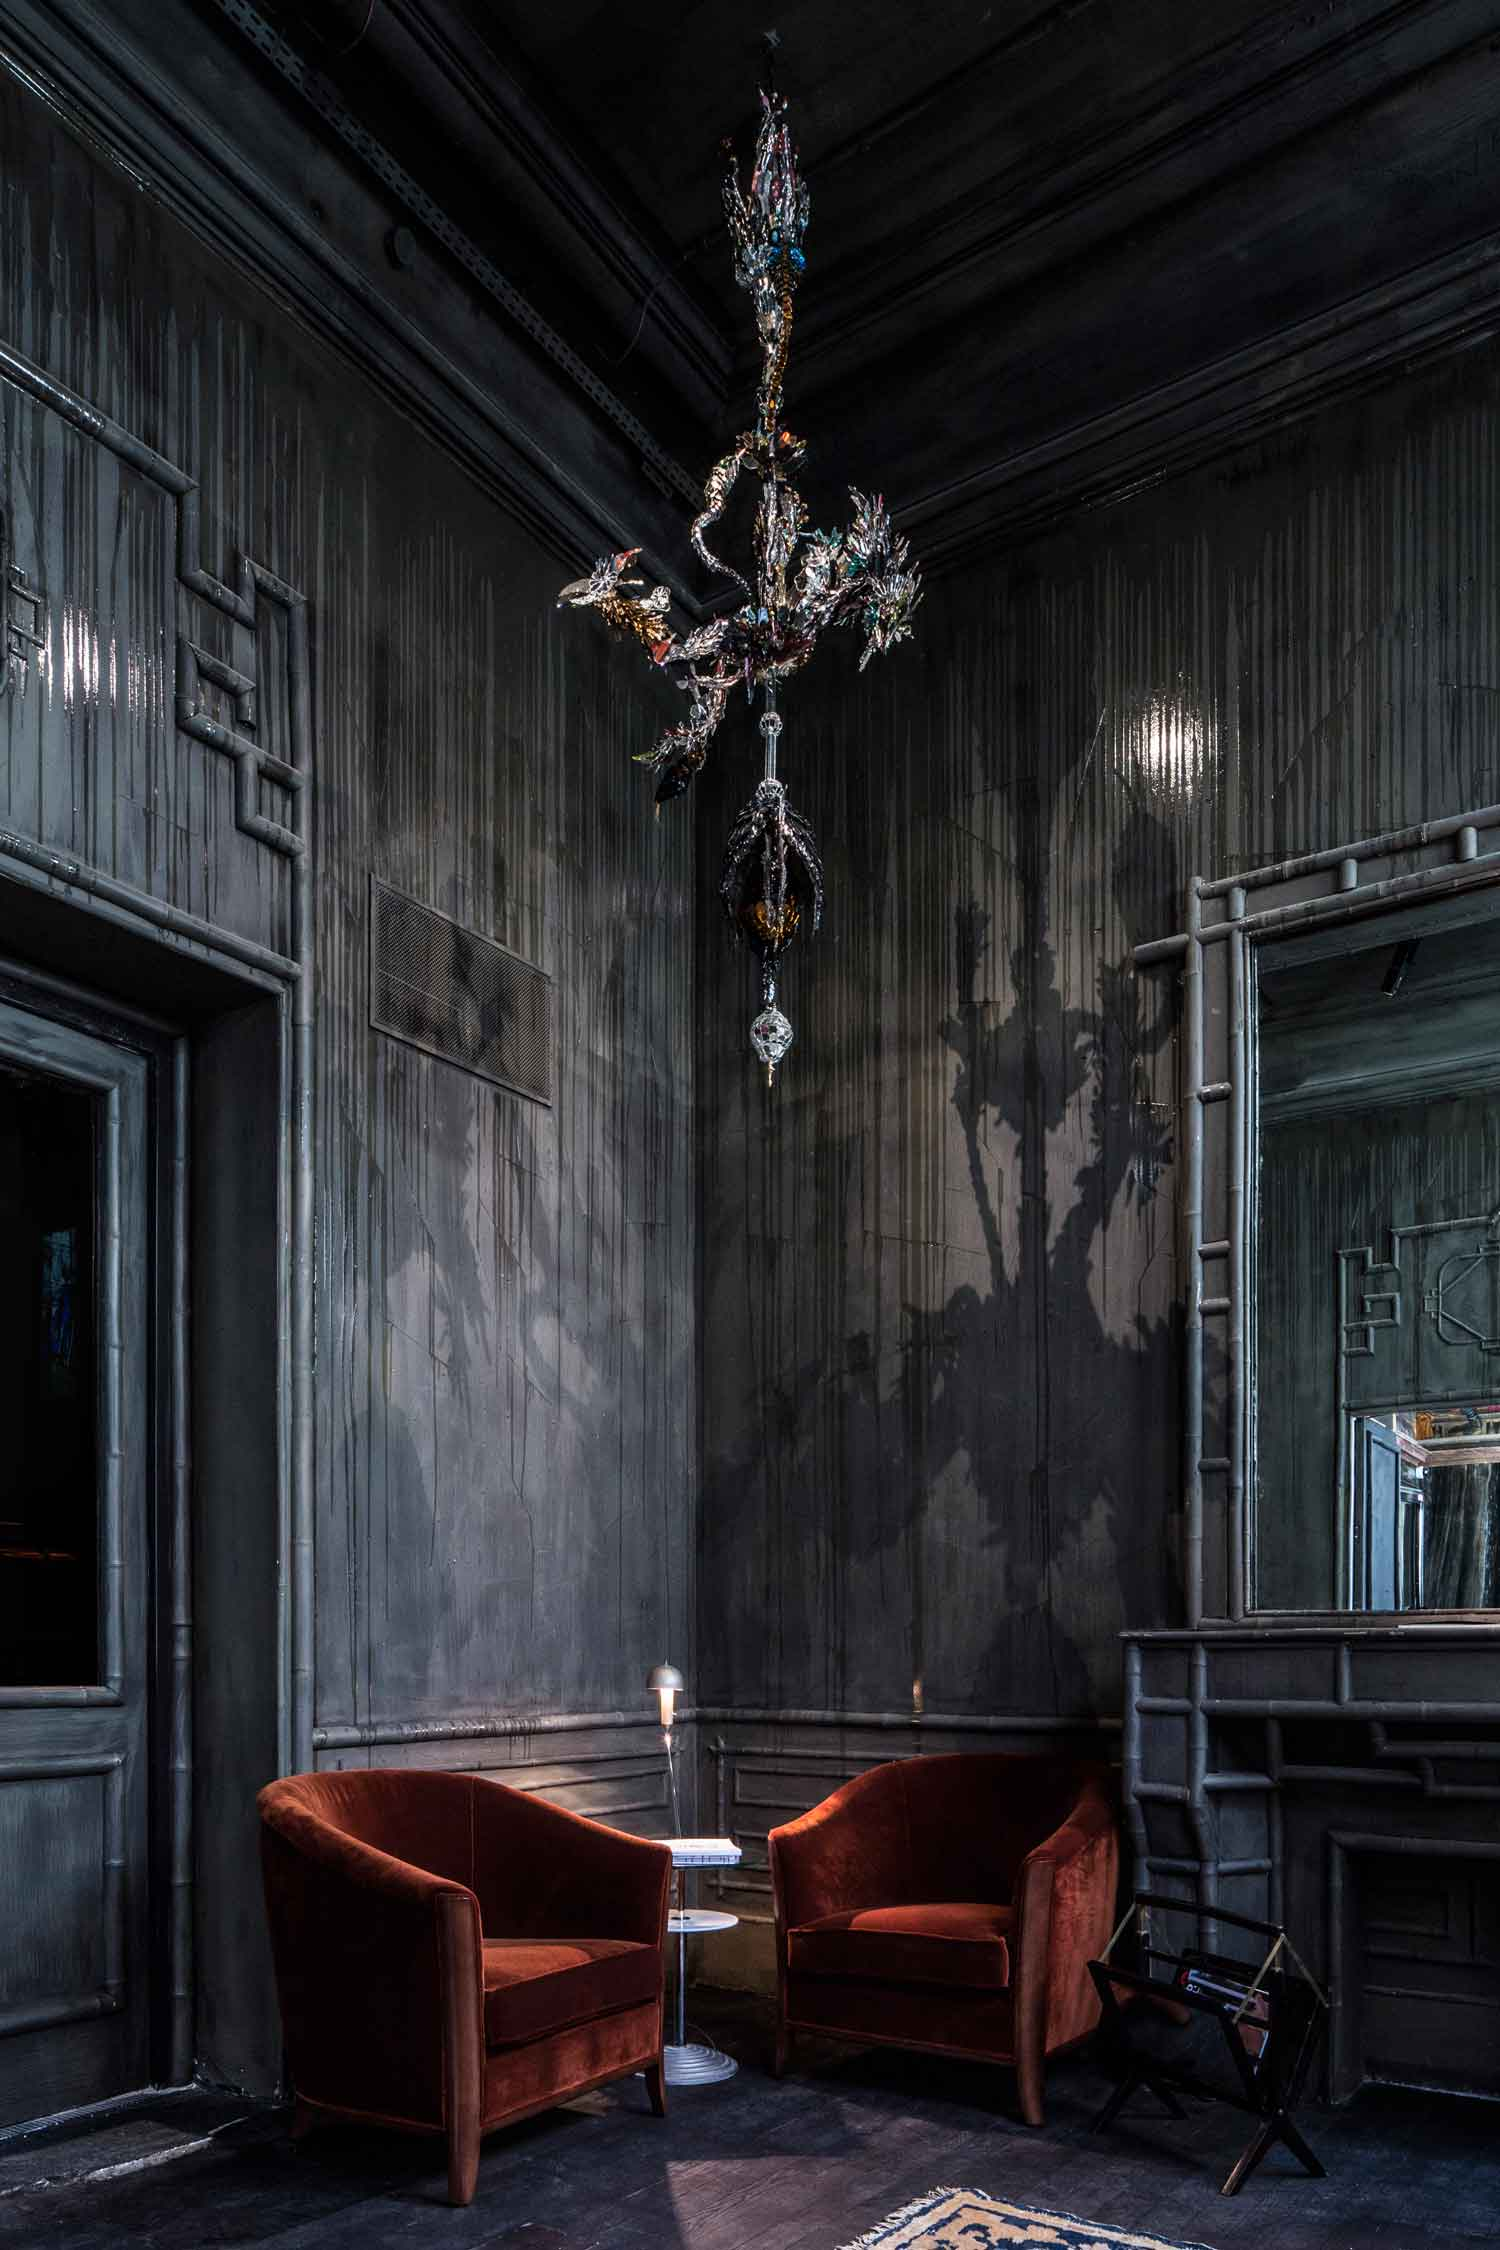 Les Bains Paris Returns as a Luxury Hotel Inside a Nightclub. Photo by Guillaume Grasset | Yellowtrace